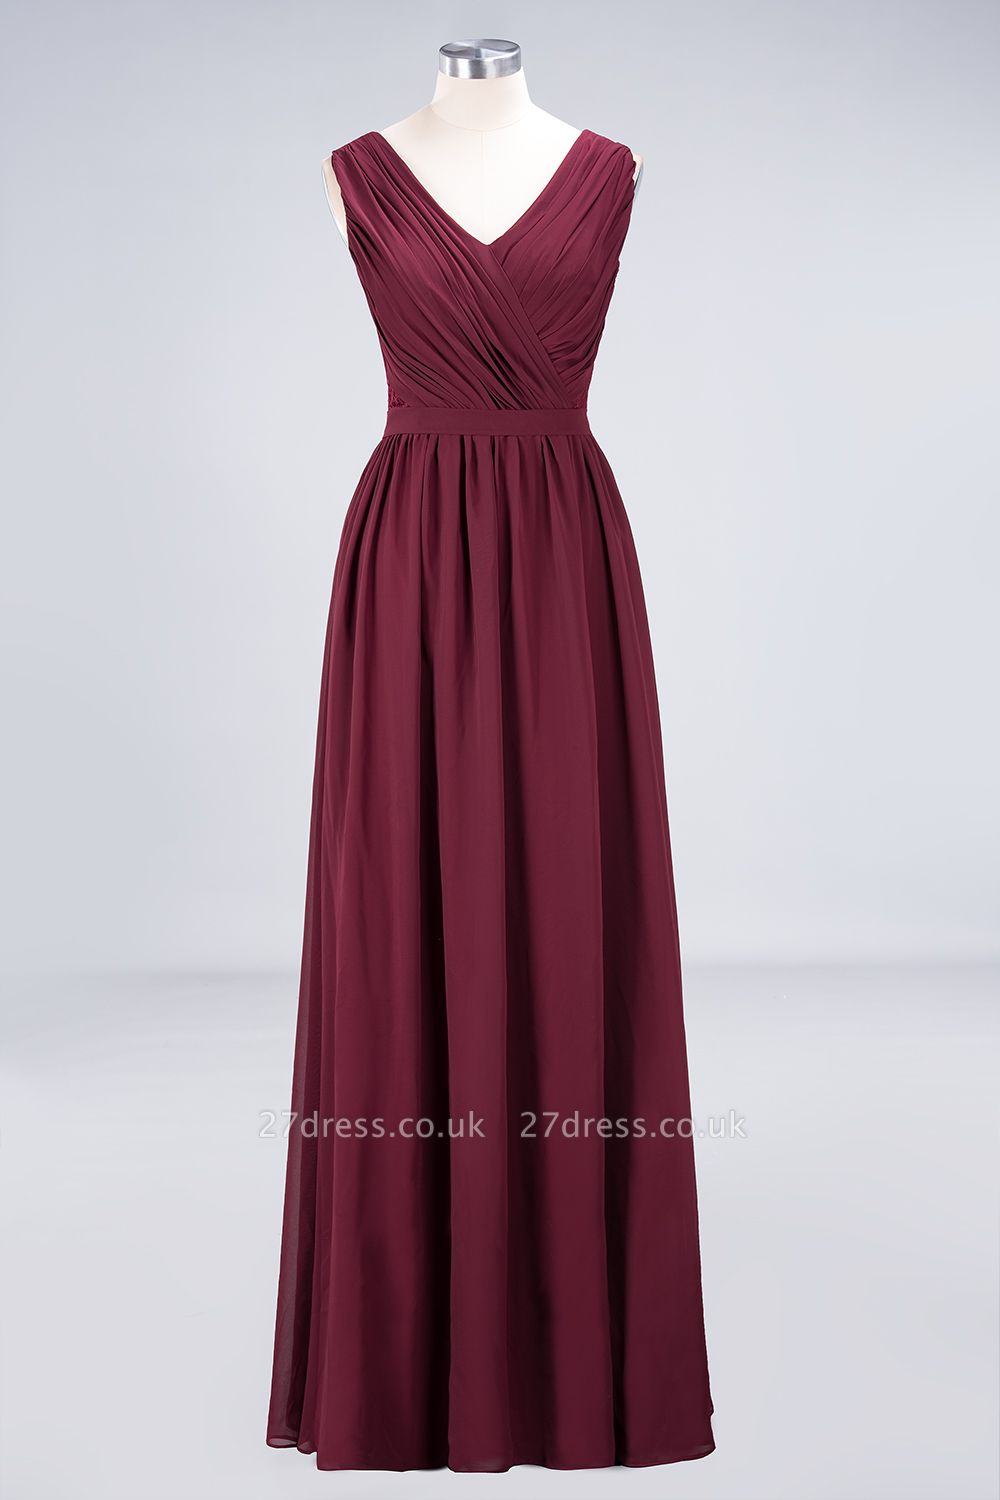 Sexy A-line Flowy Lace Alluring V-neck Sleeveless Floor-Length Bridesmaid Dress UK UK with Ruffles